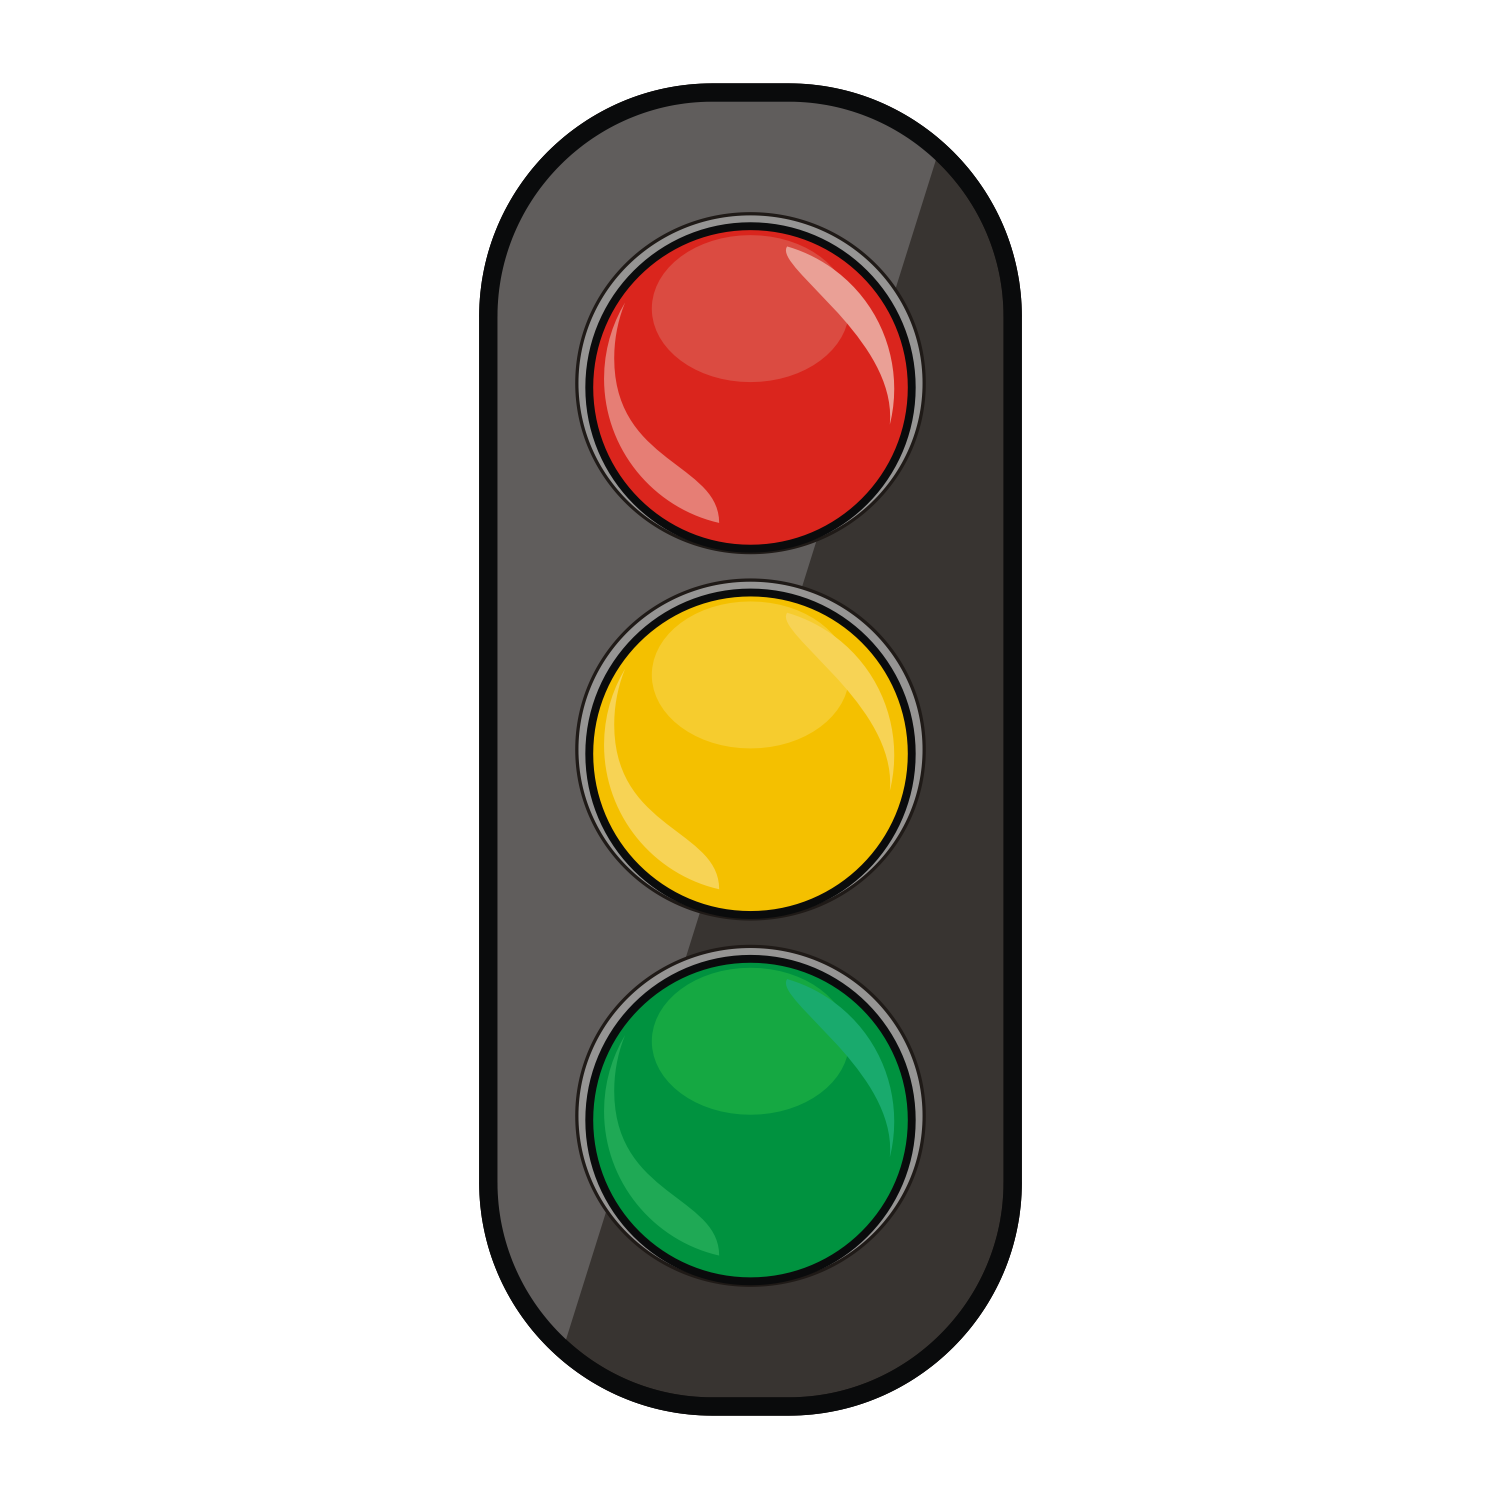 The way of light clipart graphic royalty free library Free Traffic Light, Download Free Clip Art, Free Clip Art on ... graphic royalty free library